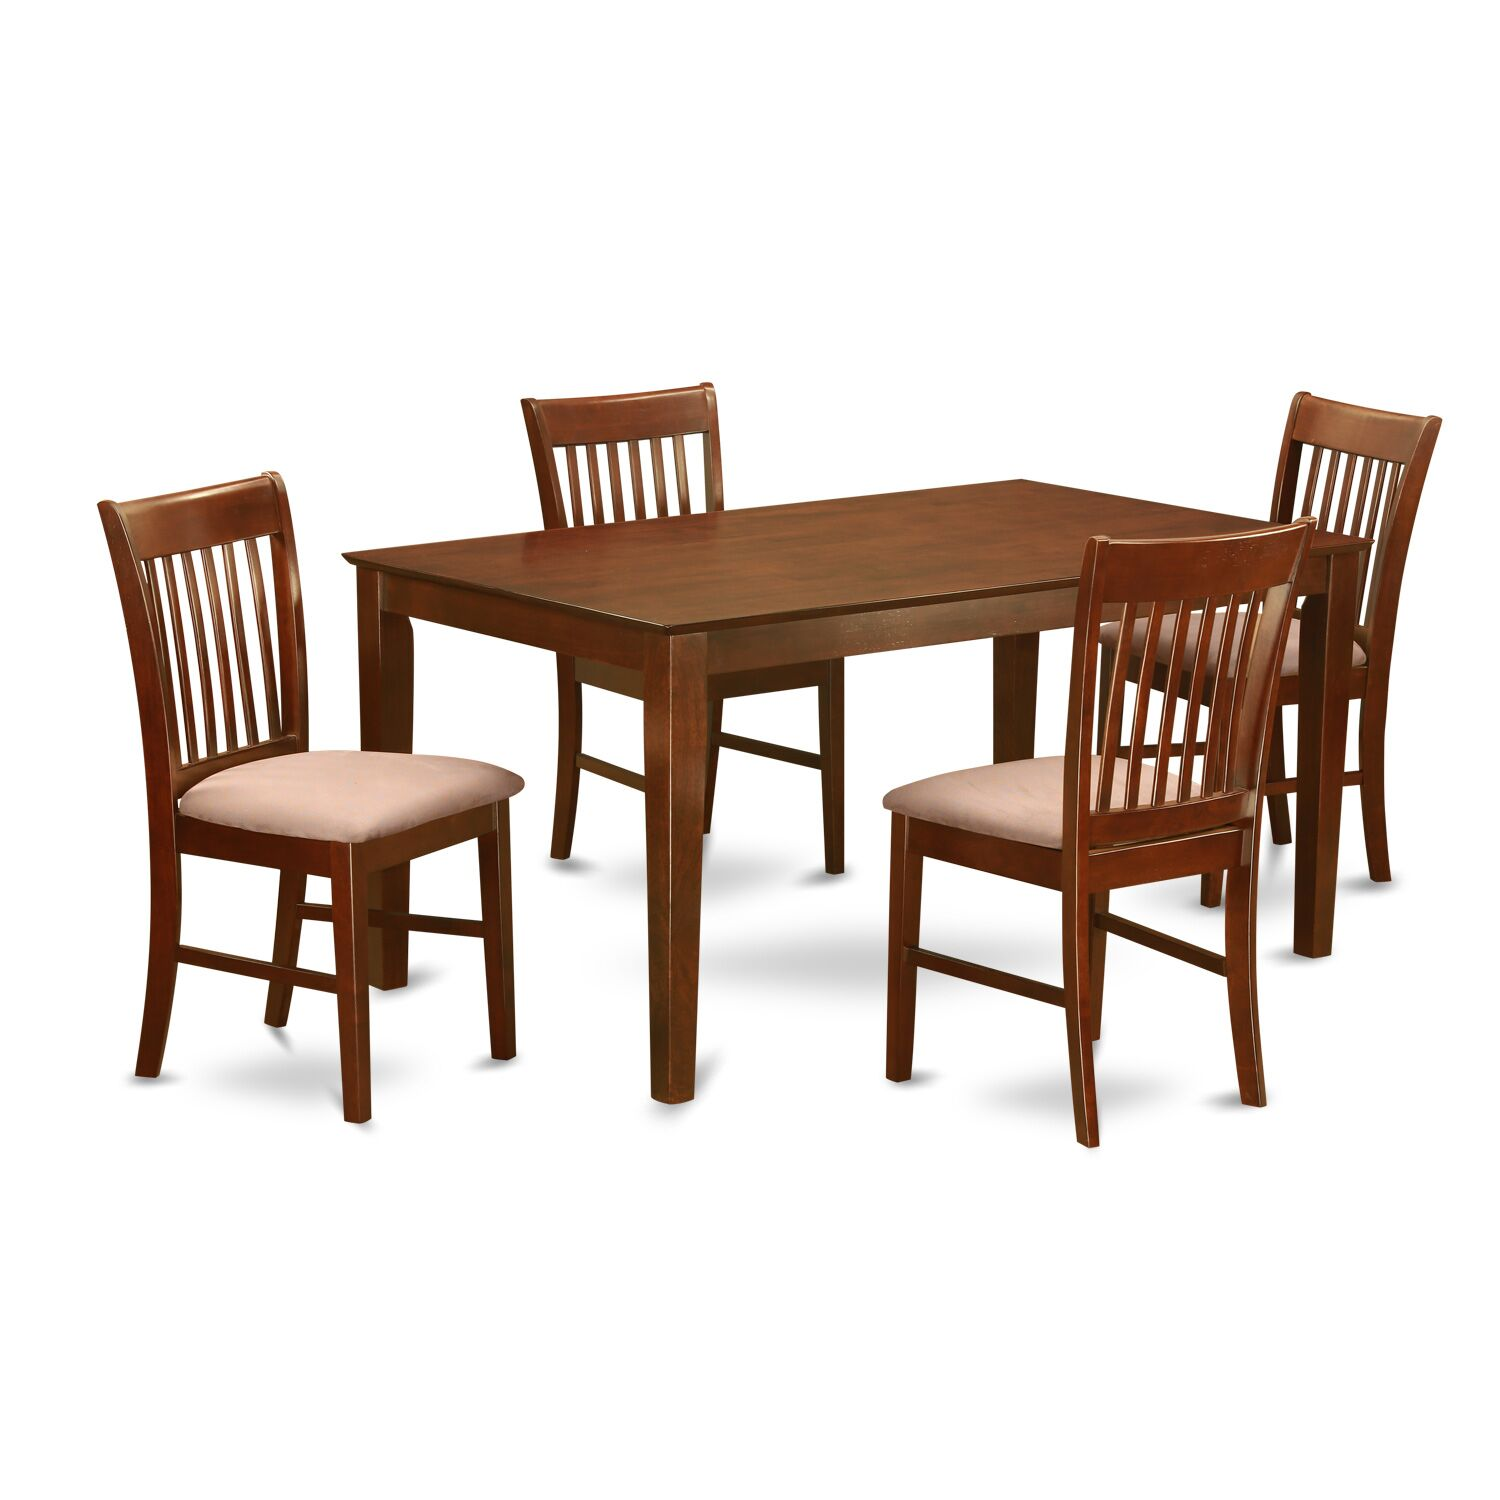 Dining Table Sets Smyrna 5 Piece Dining Set